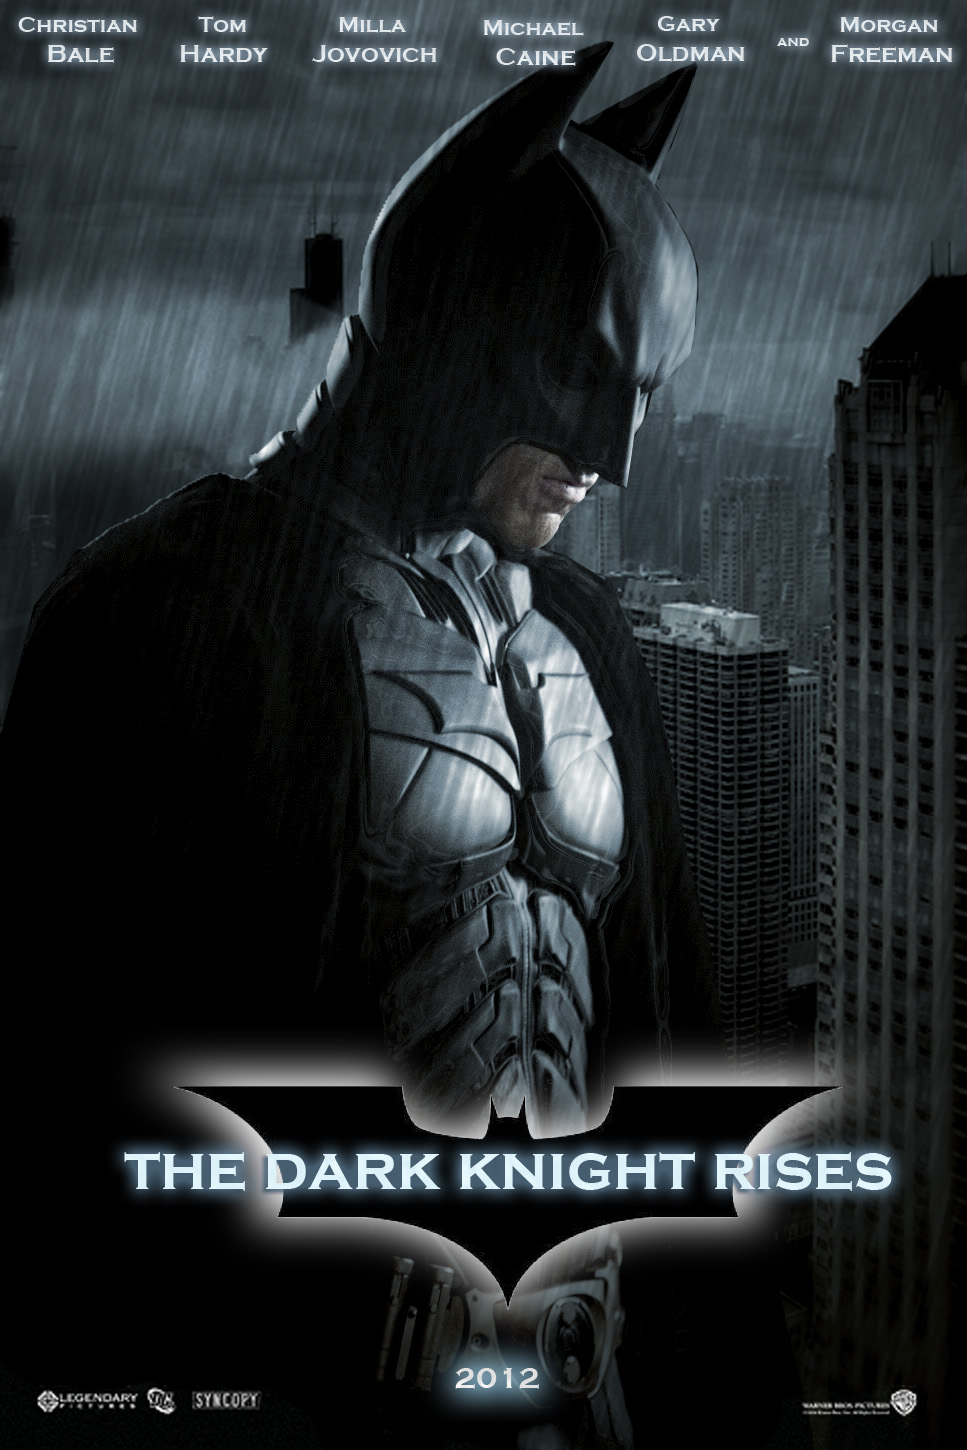 The Dark Knight | Euro Palace Casino Blog - Part 2